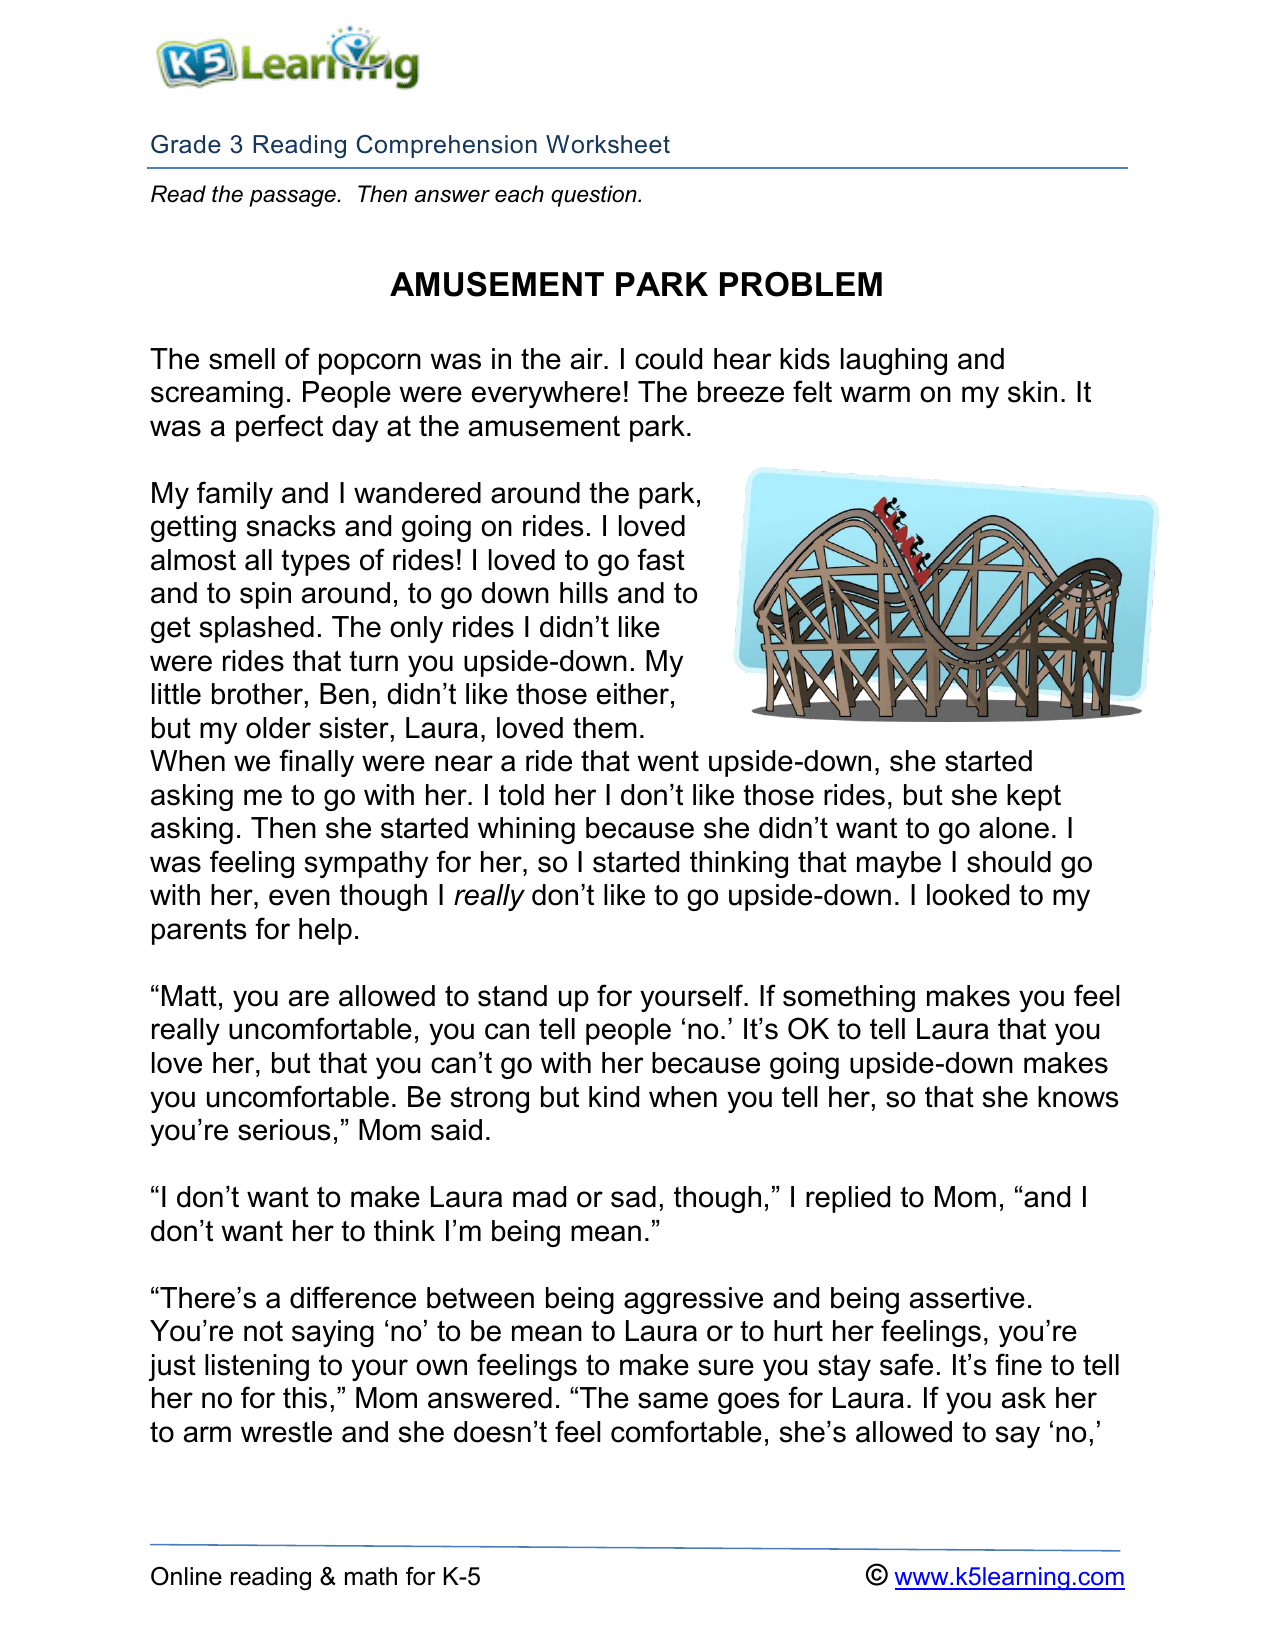 3rd Grade Reading Comprehension Amusement Park